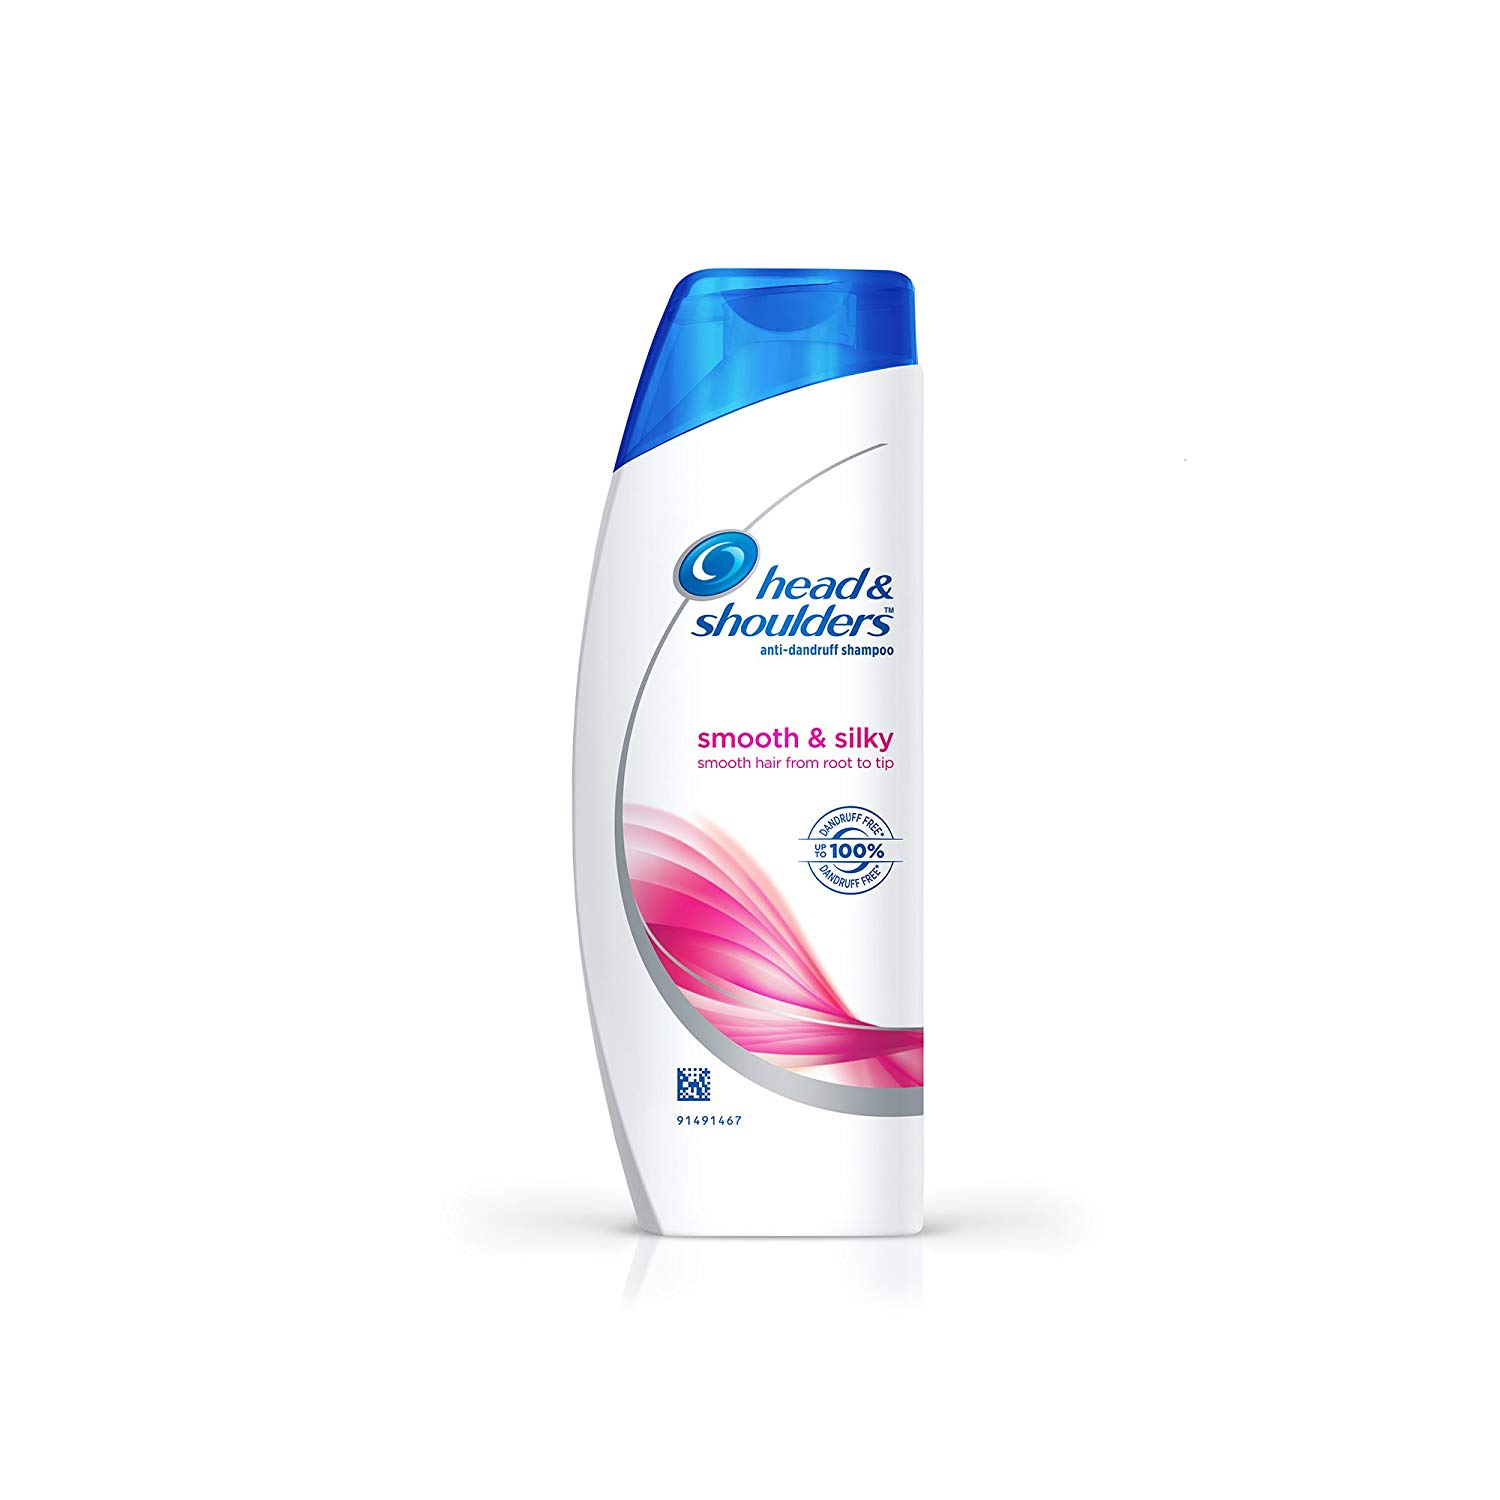 Head & Shoulders Smooth and Silky Shampoo, 90ml